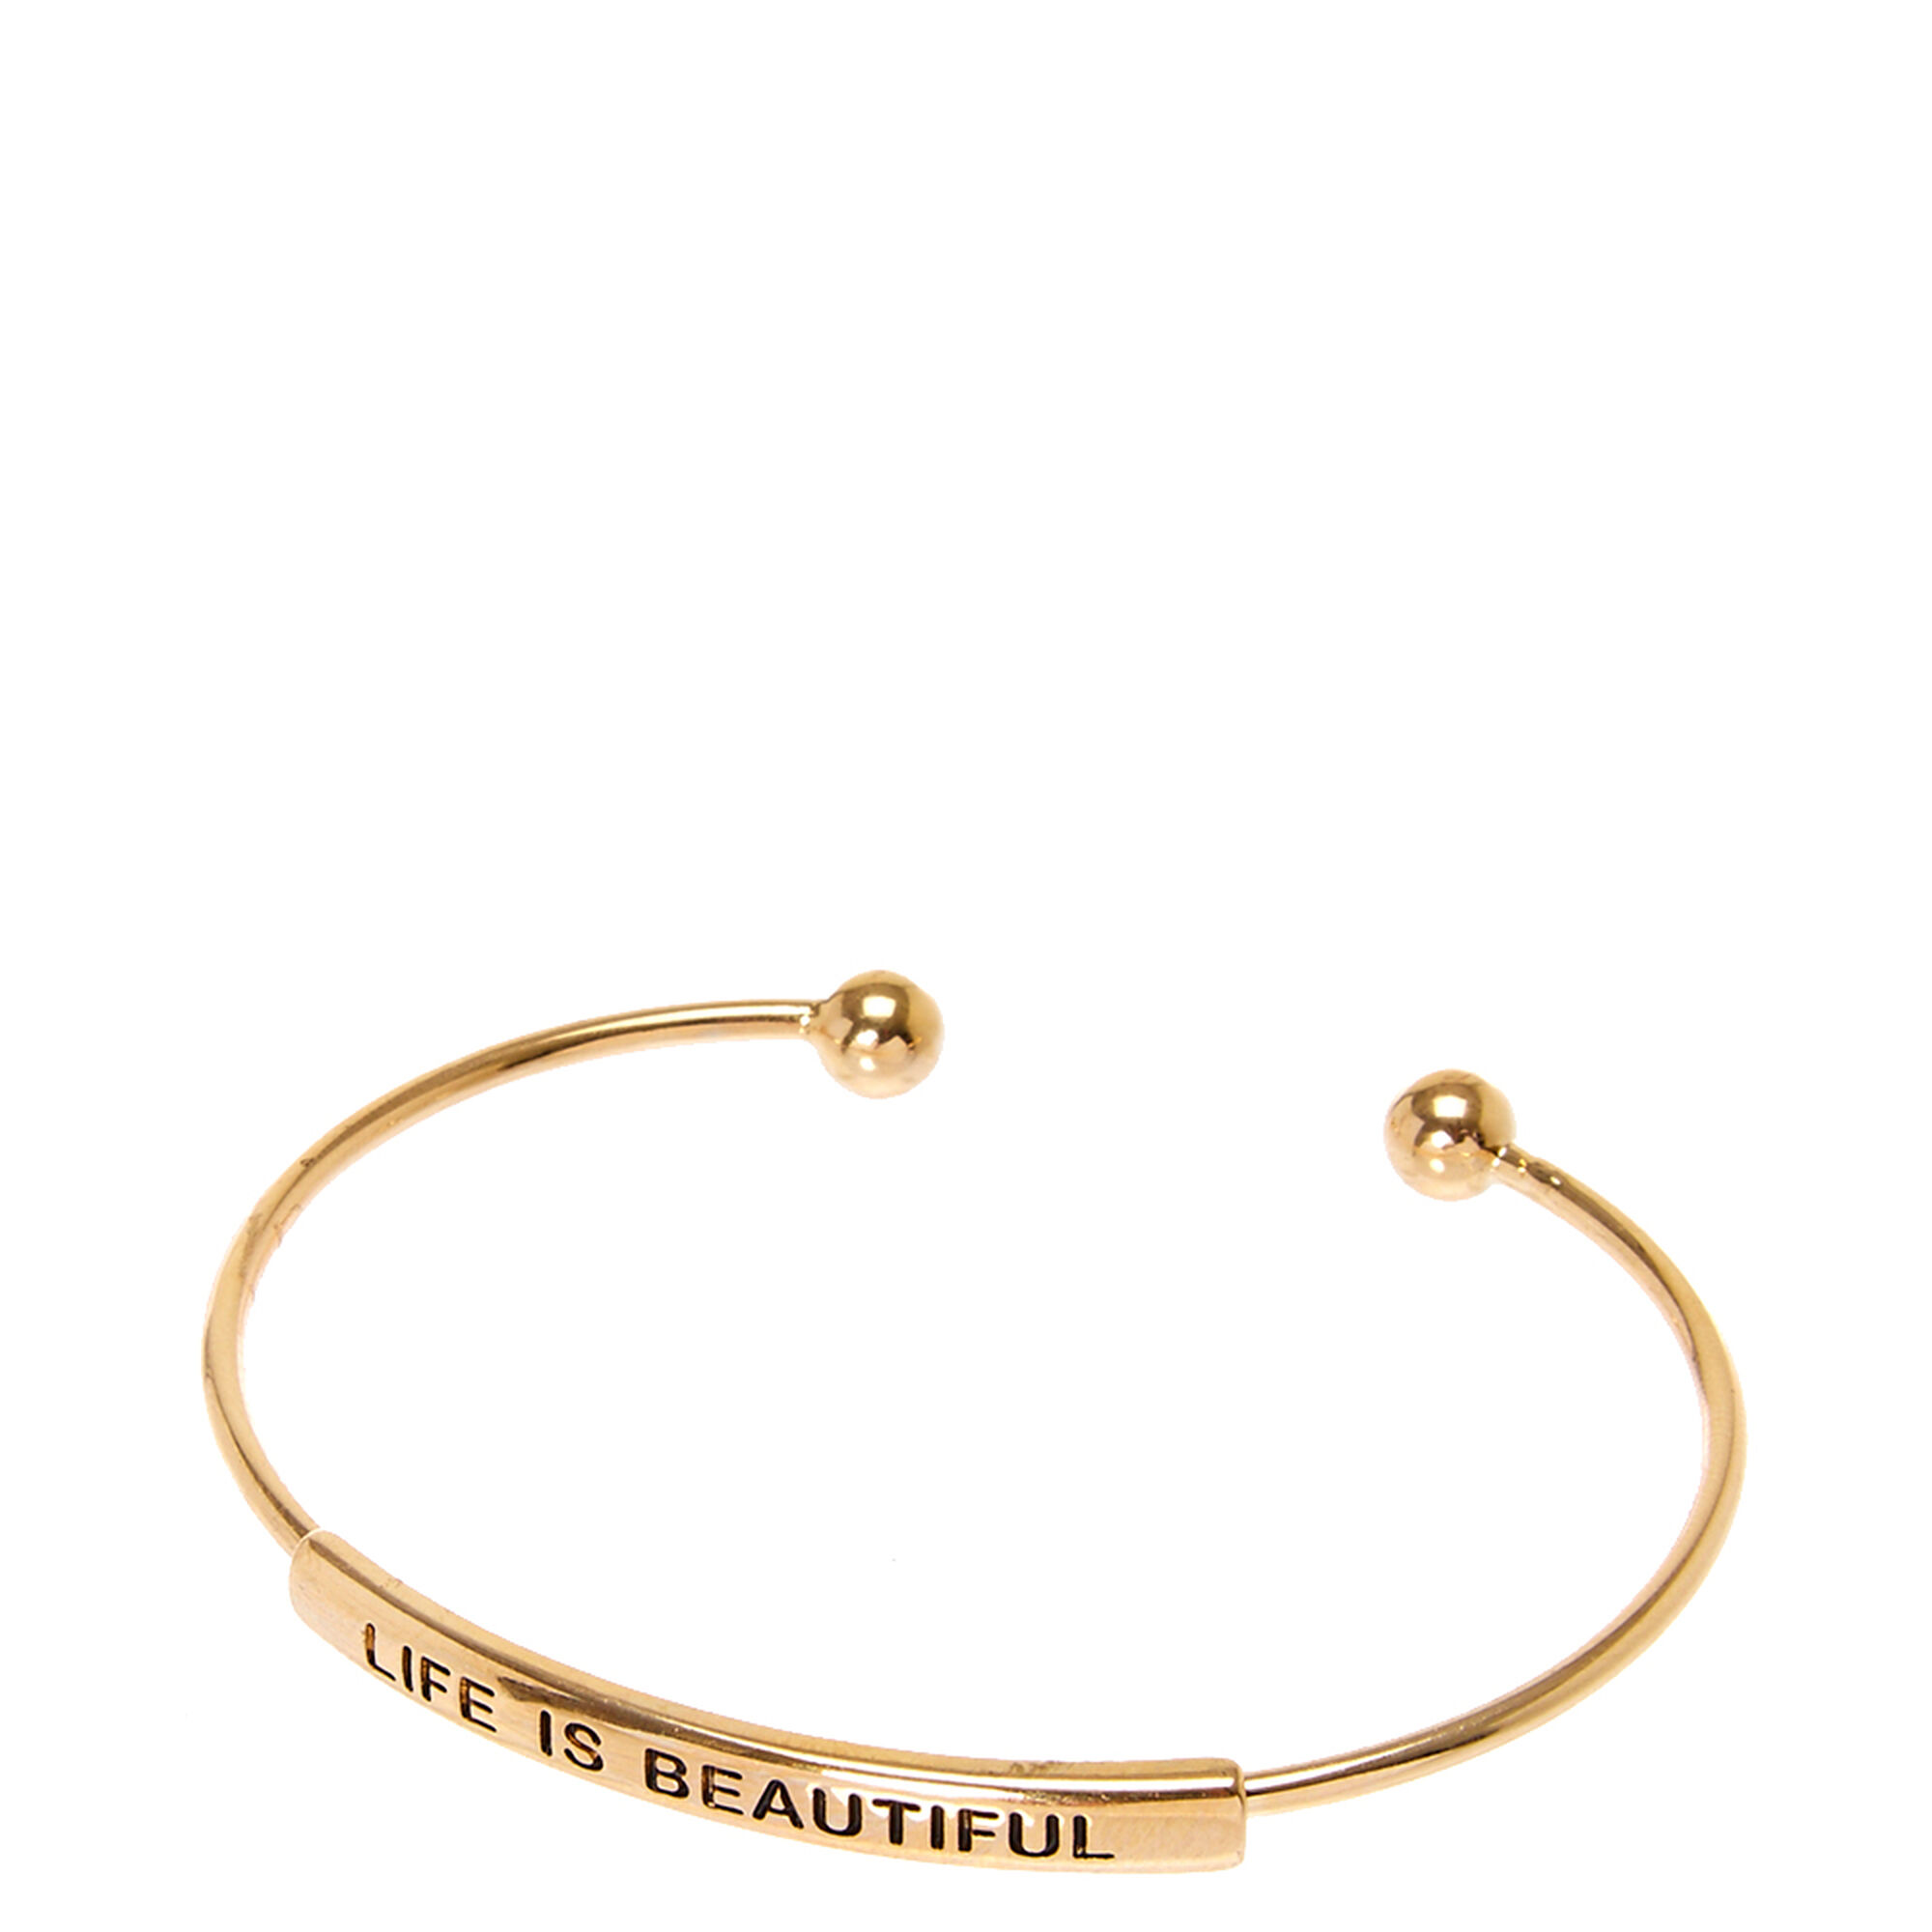 products gold beautiful collections bracelets crystals flower bangle bracelet stone thestoneflower com grande jstyle